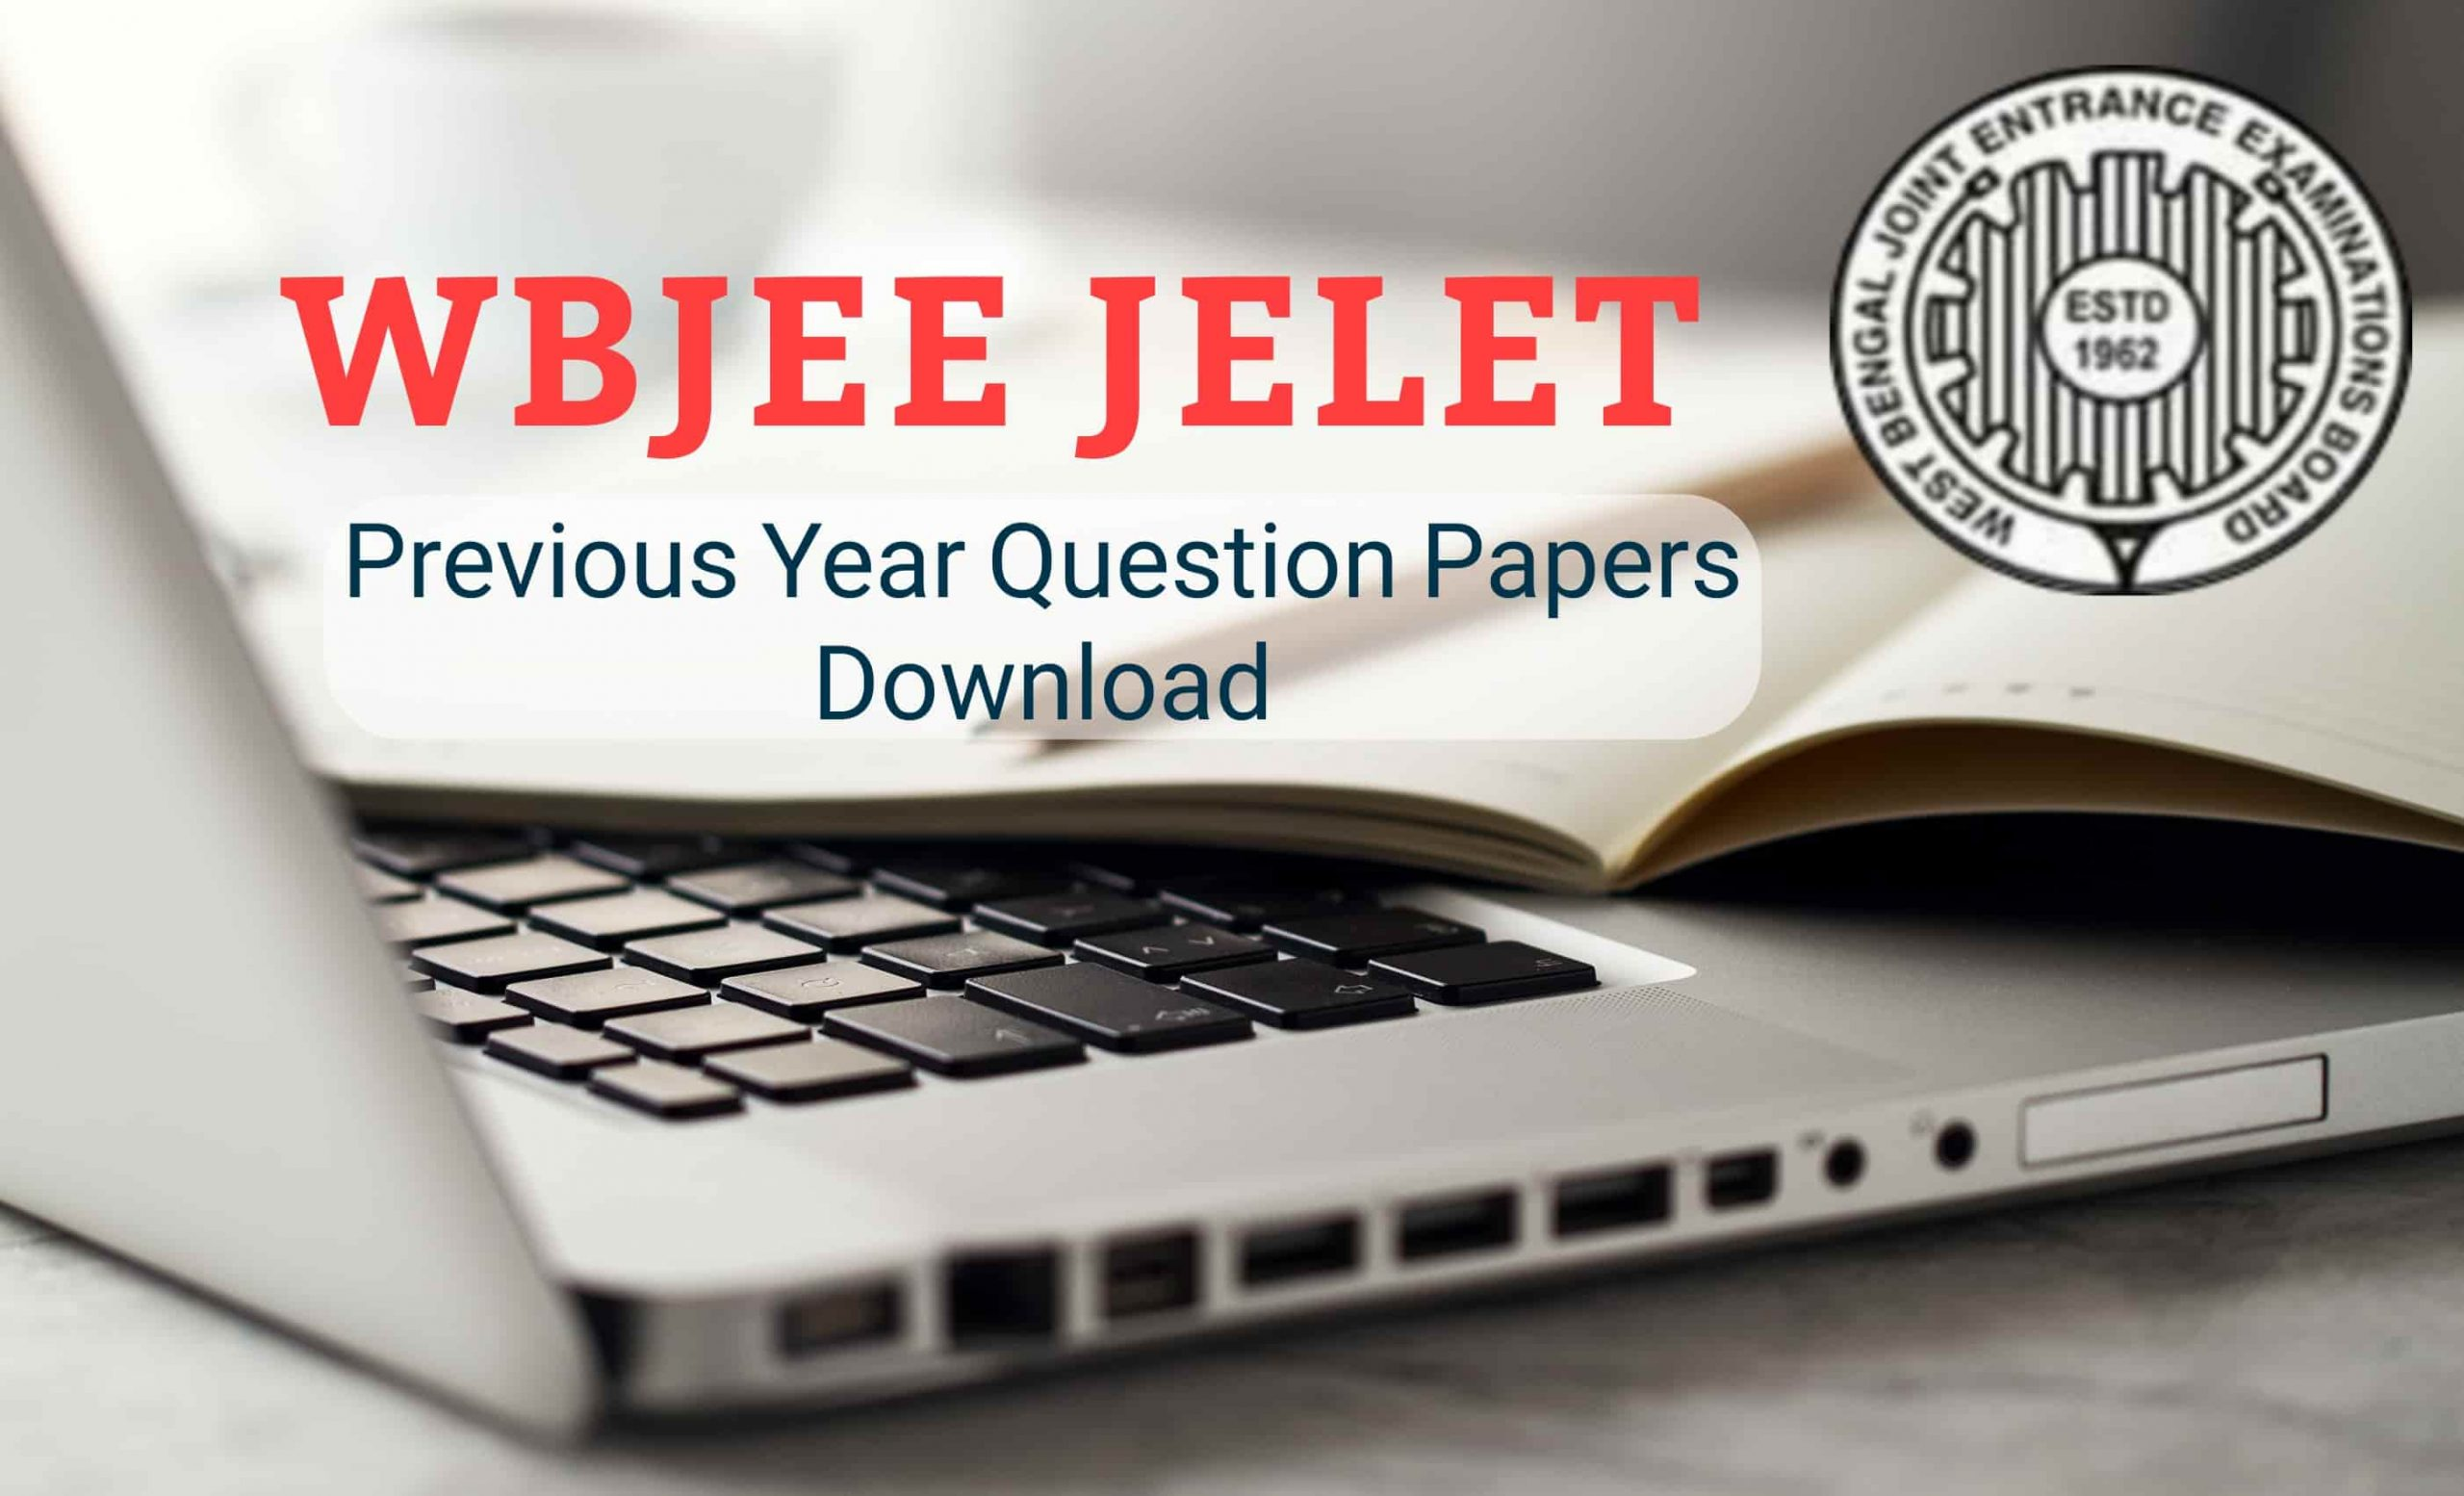 WBJEEB JELET Previous Years Question Papers